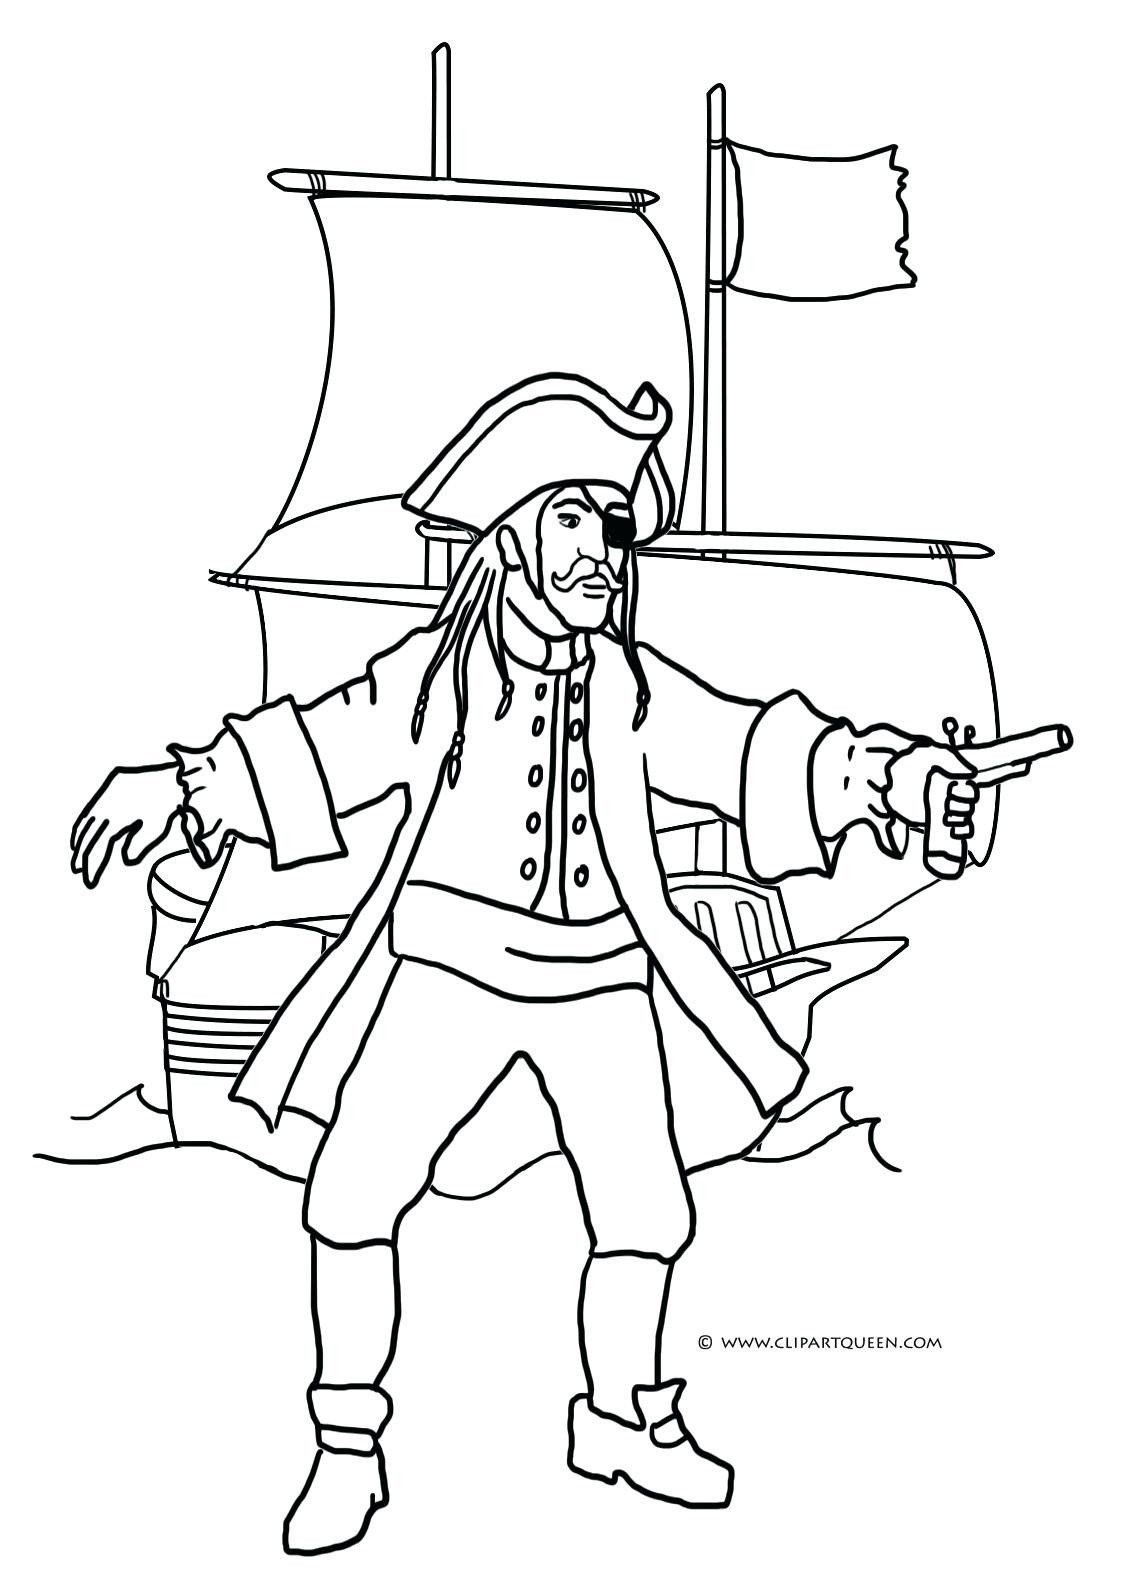 Treasure Chest Coloring Page Unique Bucky The Pirate Ship